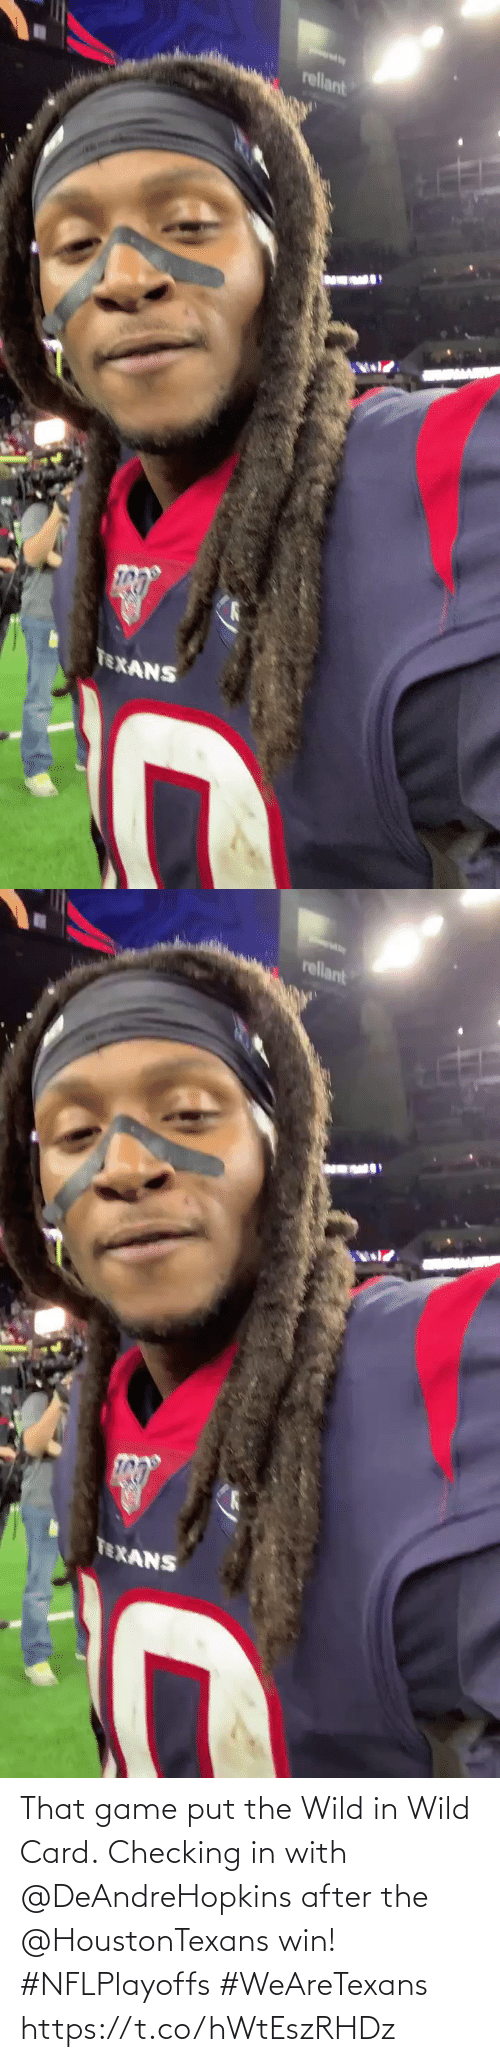 Texans: rellant  TEXANS   rellant  TEXANS That game put the Wild in Wild Card.  Checking in with @DeAndreHopkins after the @HoustonTexans win! #NFLPlayoffs #WeAreTexans https://t.co/hWtEszRHDz